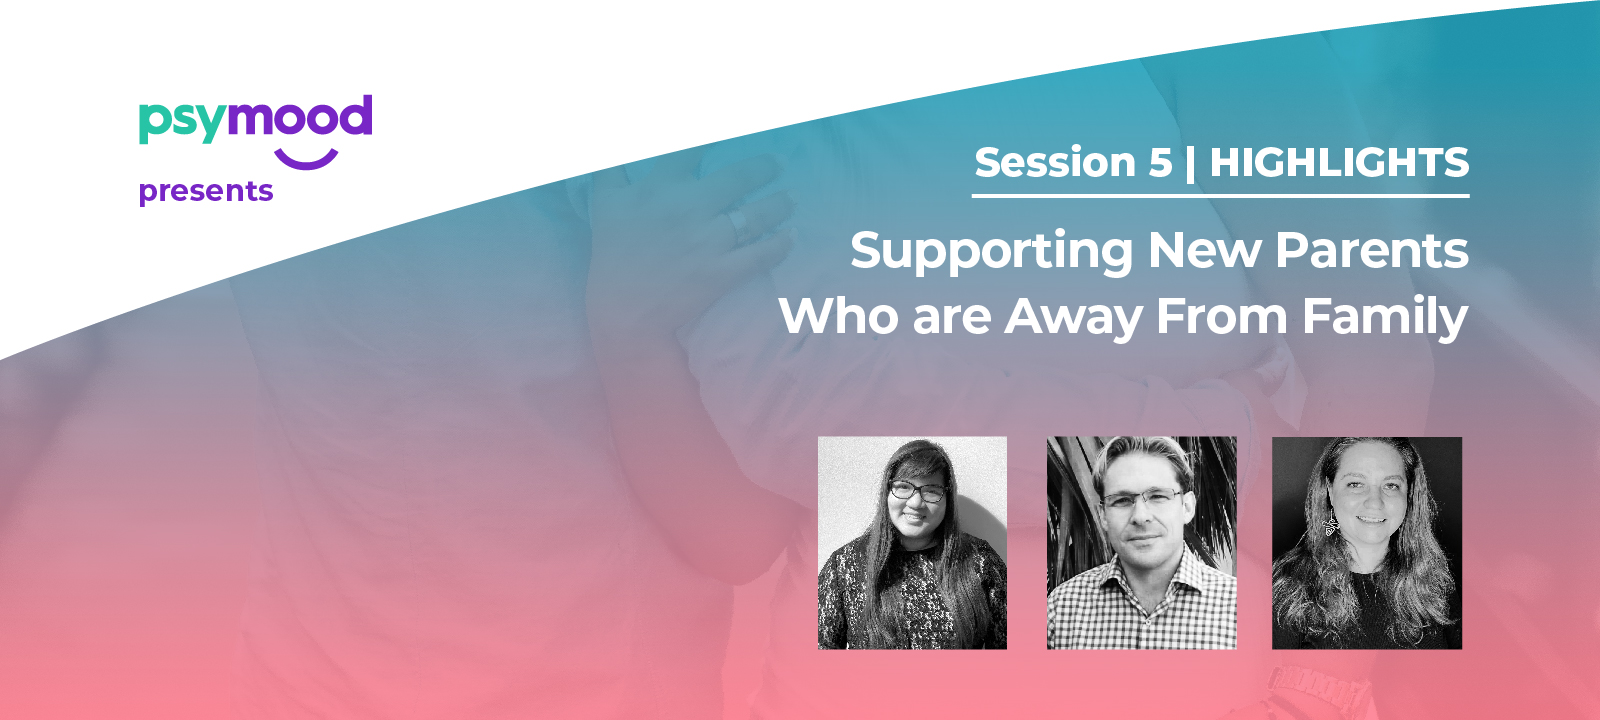 Supporting New Parents Who are Away From Family – Session Highlights